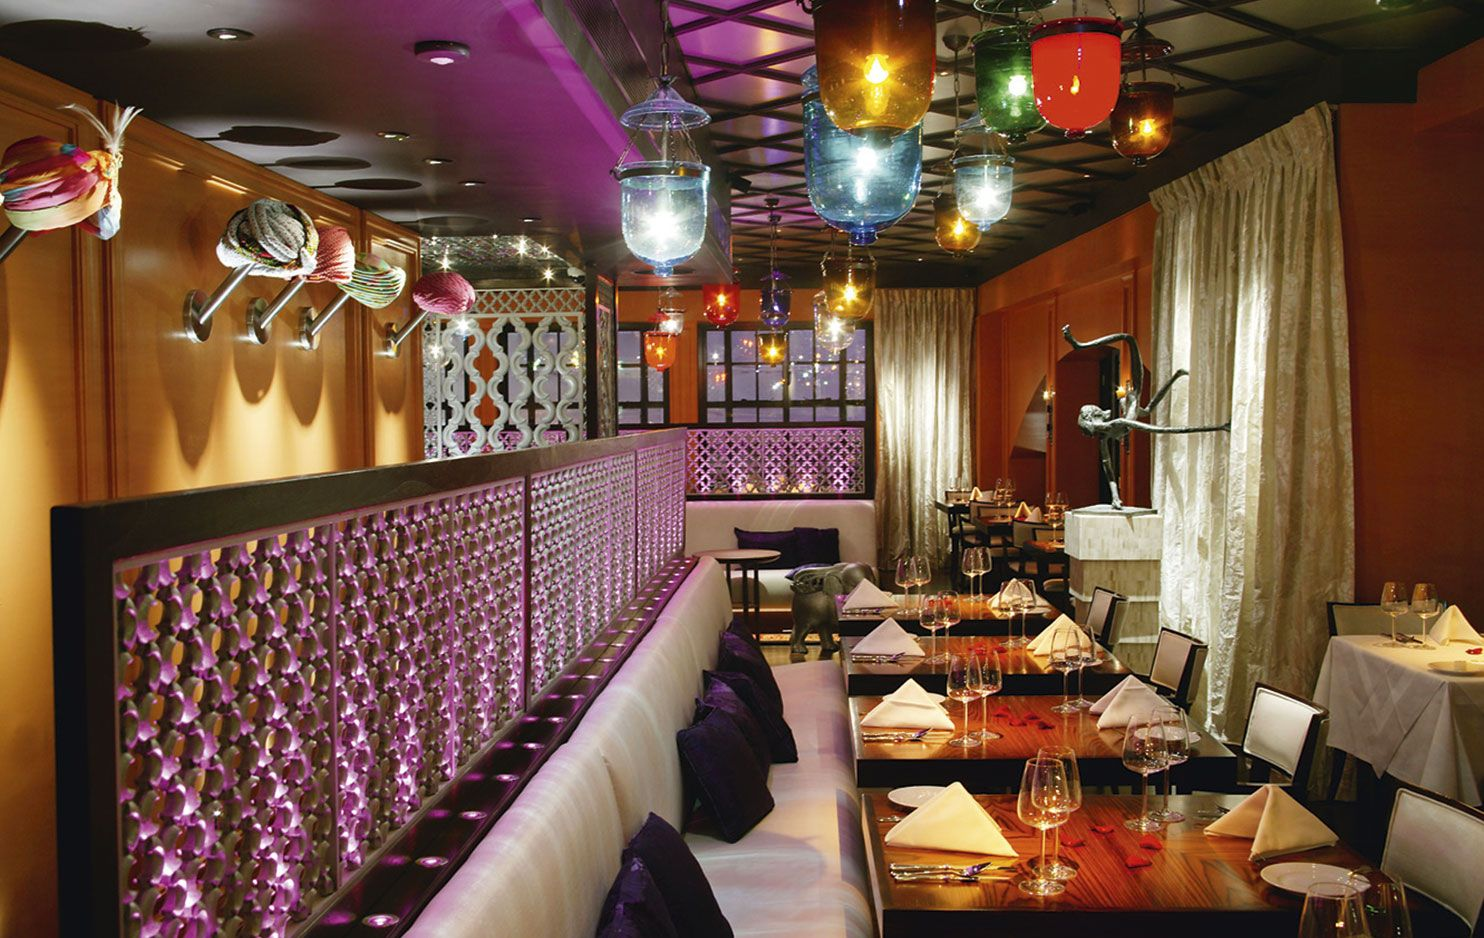 Decoration indian restaurant design unique decorating minimalist restaurant decor in - Restaurant decor supplies ...